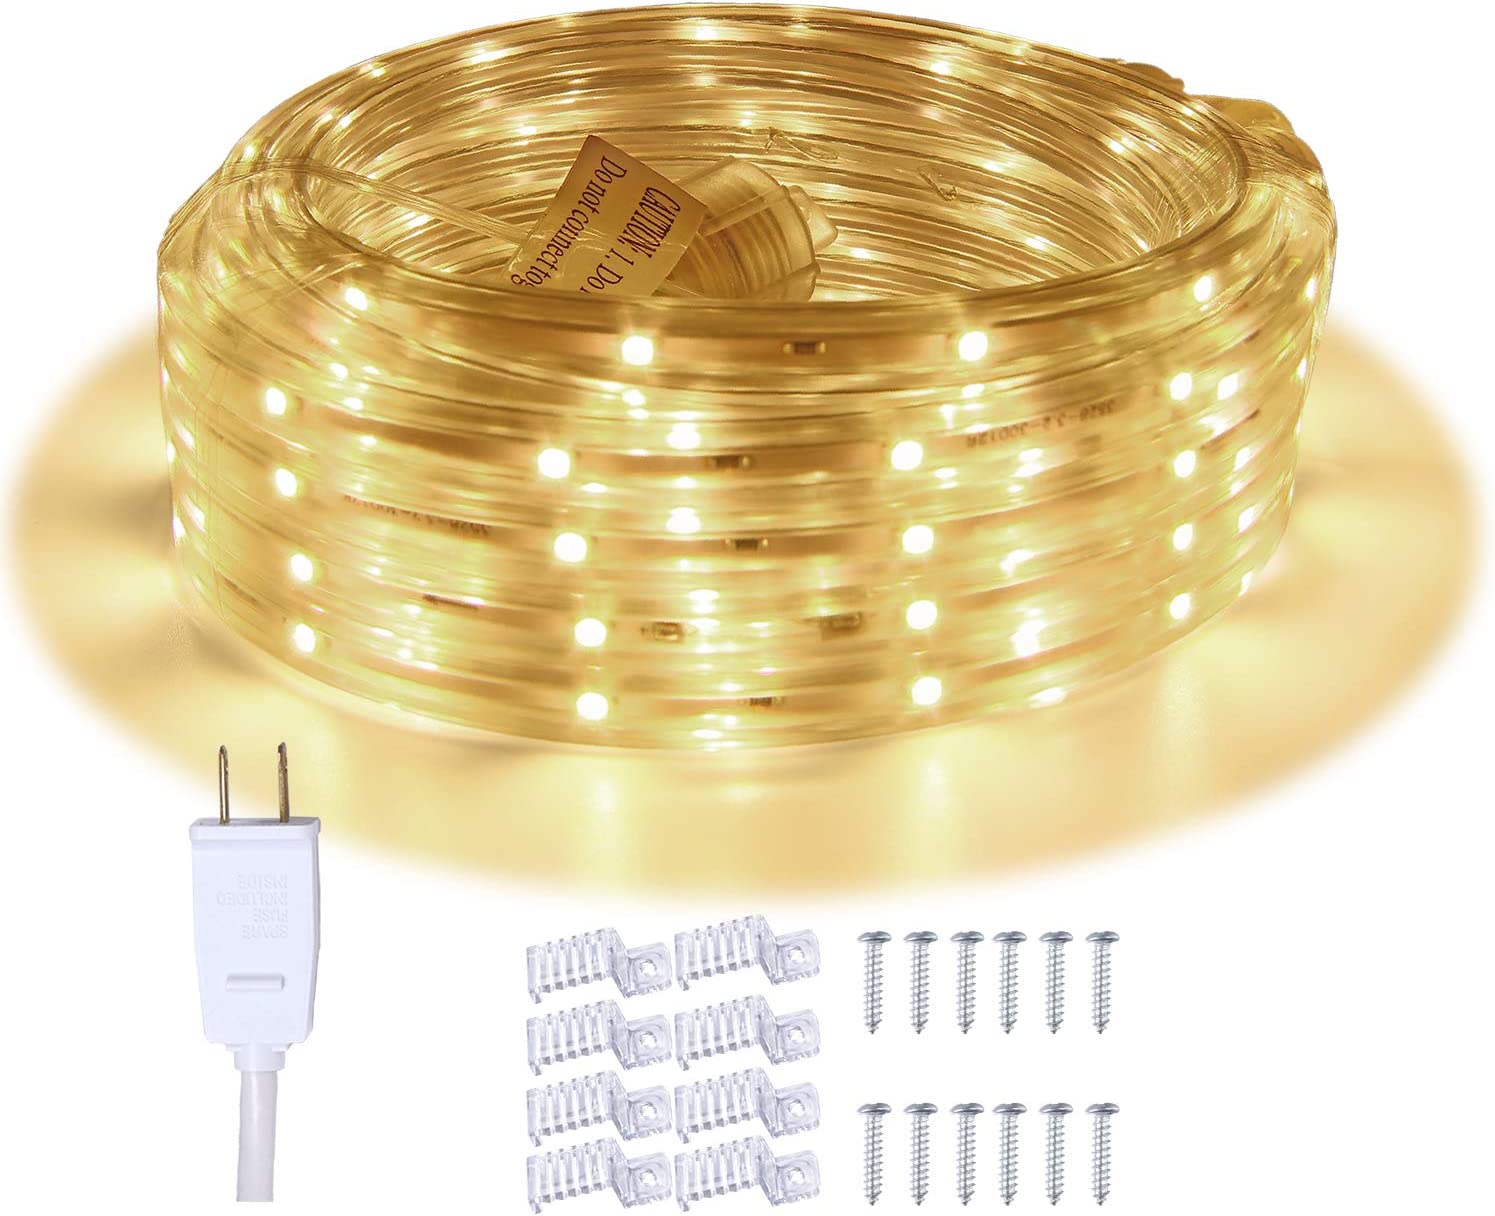 LED Rope Lights, 16.4ft Waterproof Connectable Strip Lighting, 3000K Warm White, Indoor Outdoor Mood Lighting for Home Christmas Holiday Garden Patio Party Decoration